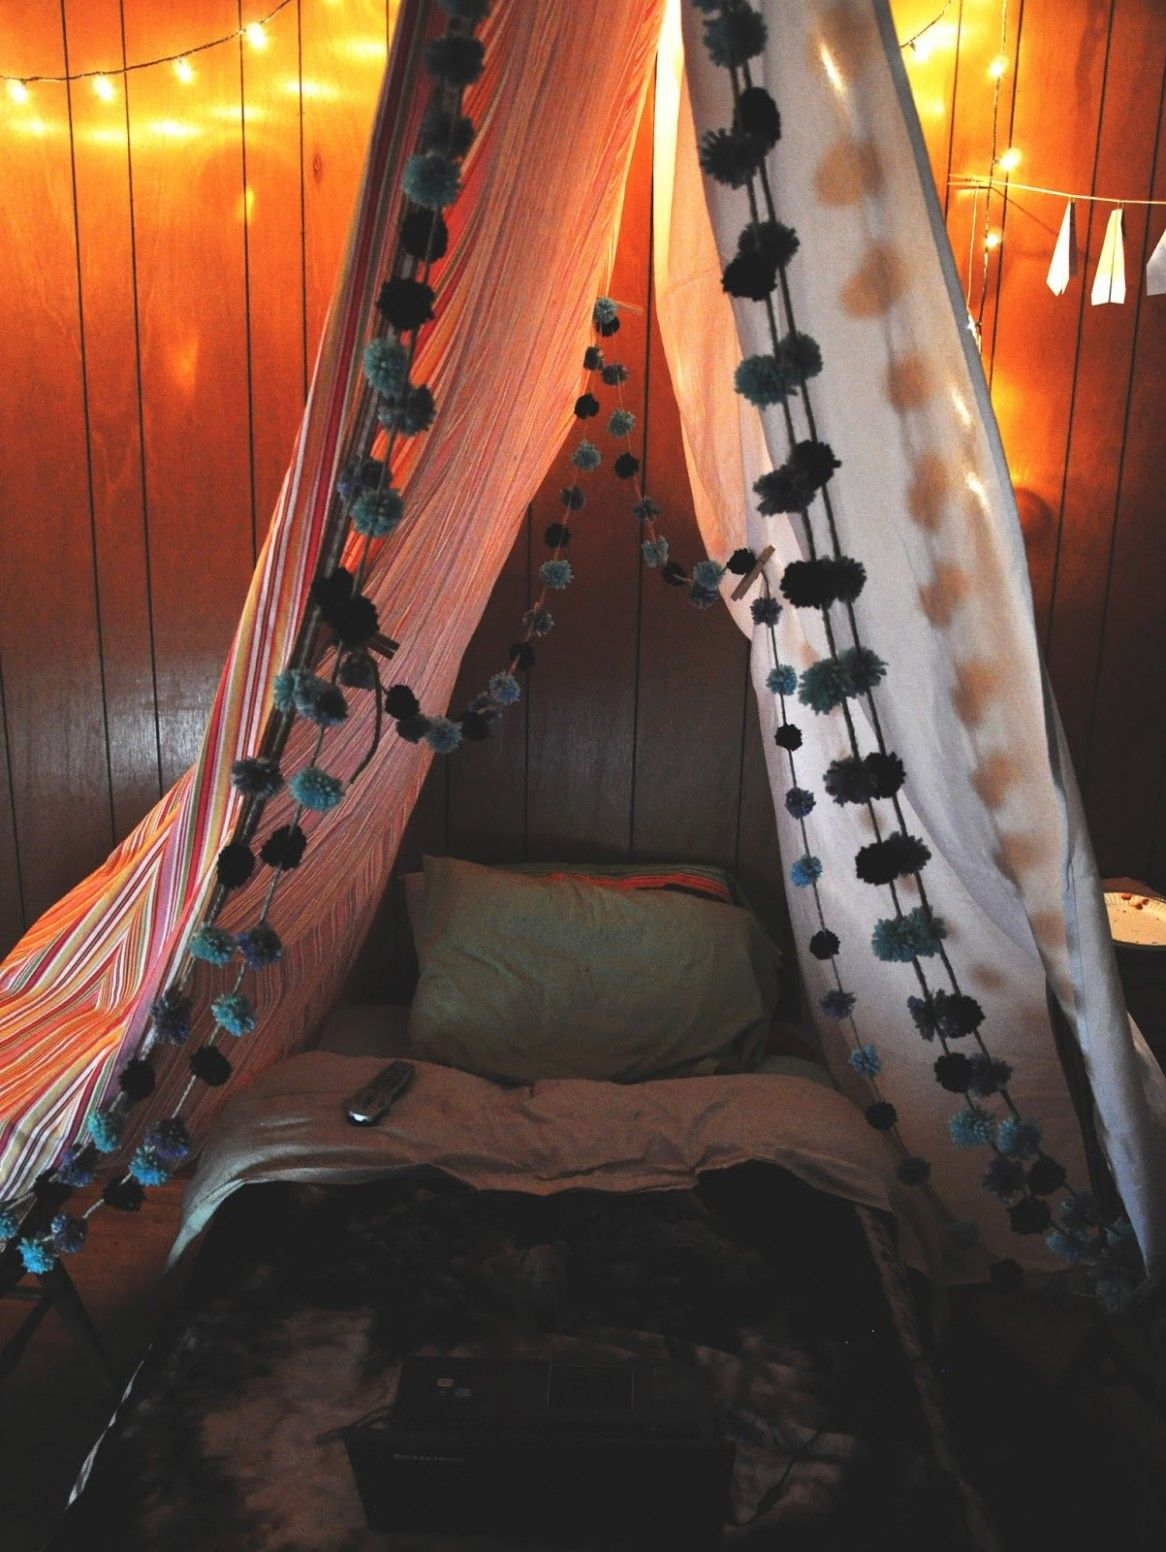 All You Need To Know About How To Make A Blanket Fort